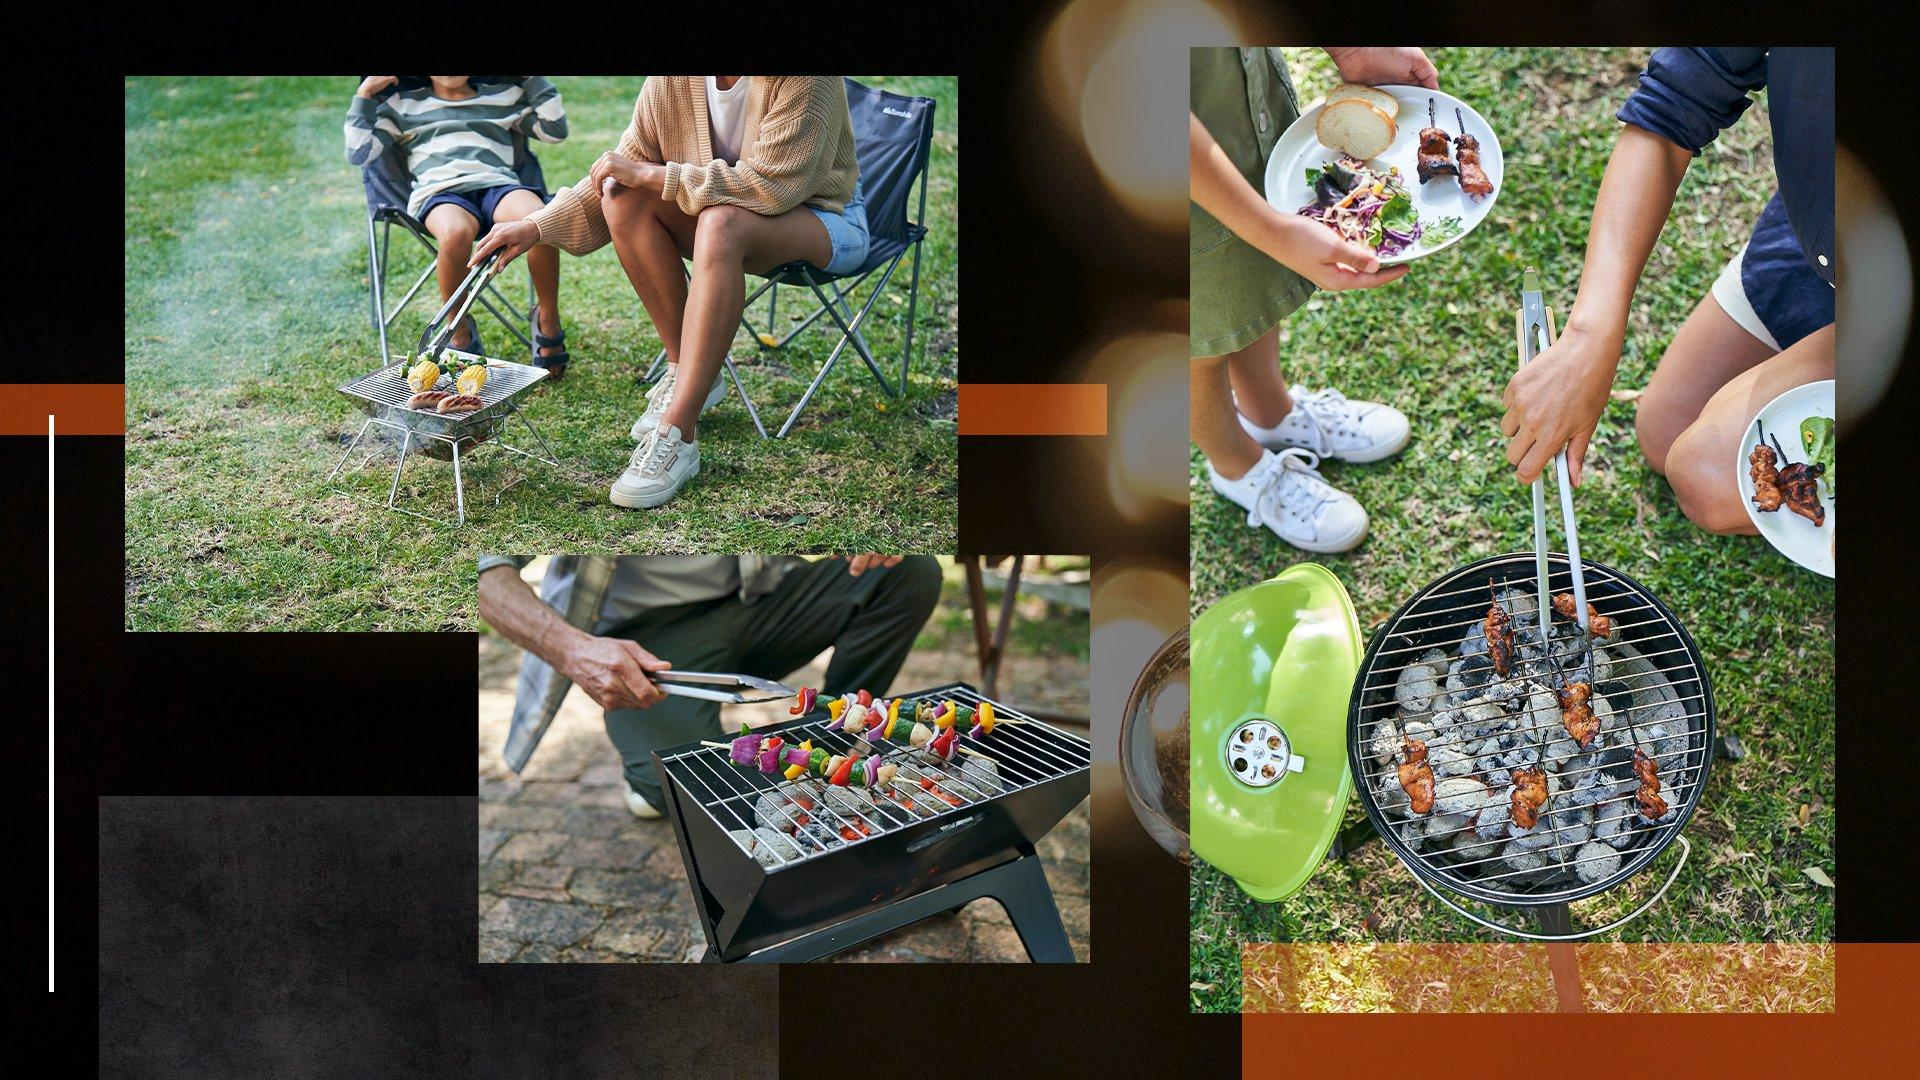 A collage of images showcasing BBQs in a daytime setting in a backgarden. The images shows a mother and father using various BBQs with their children.